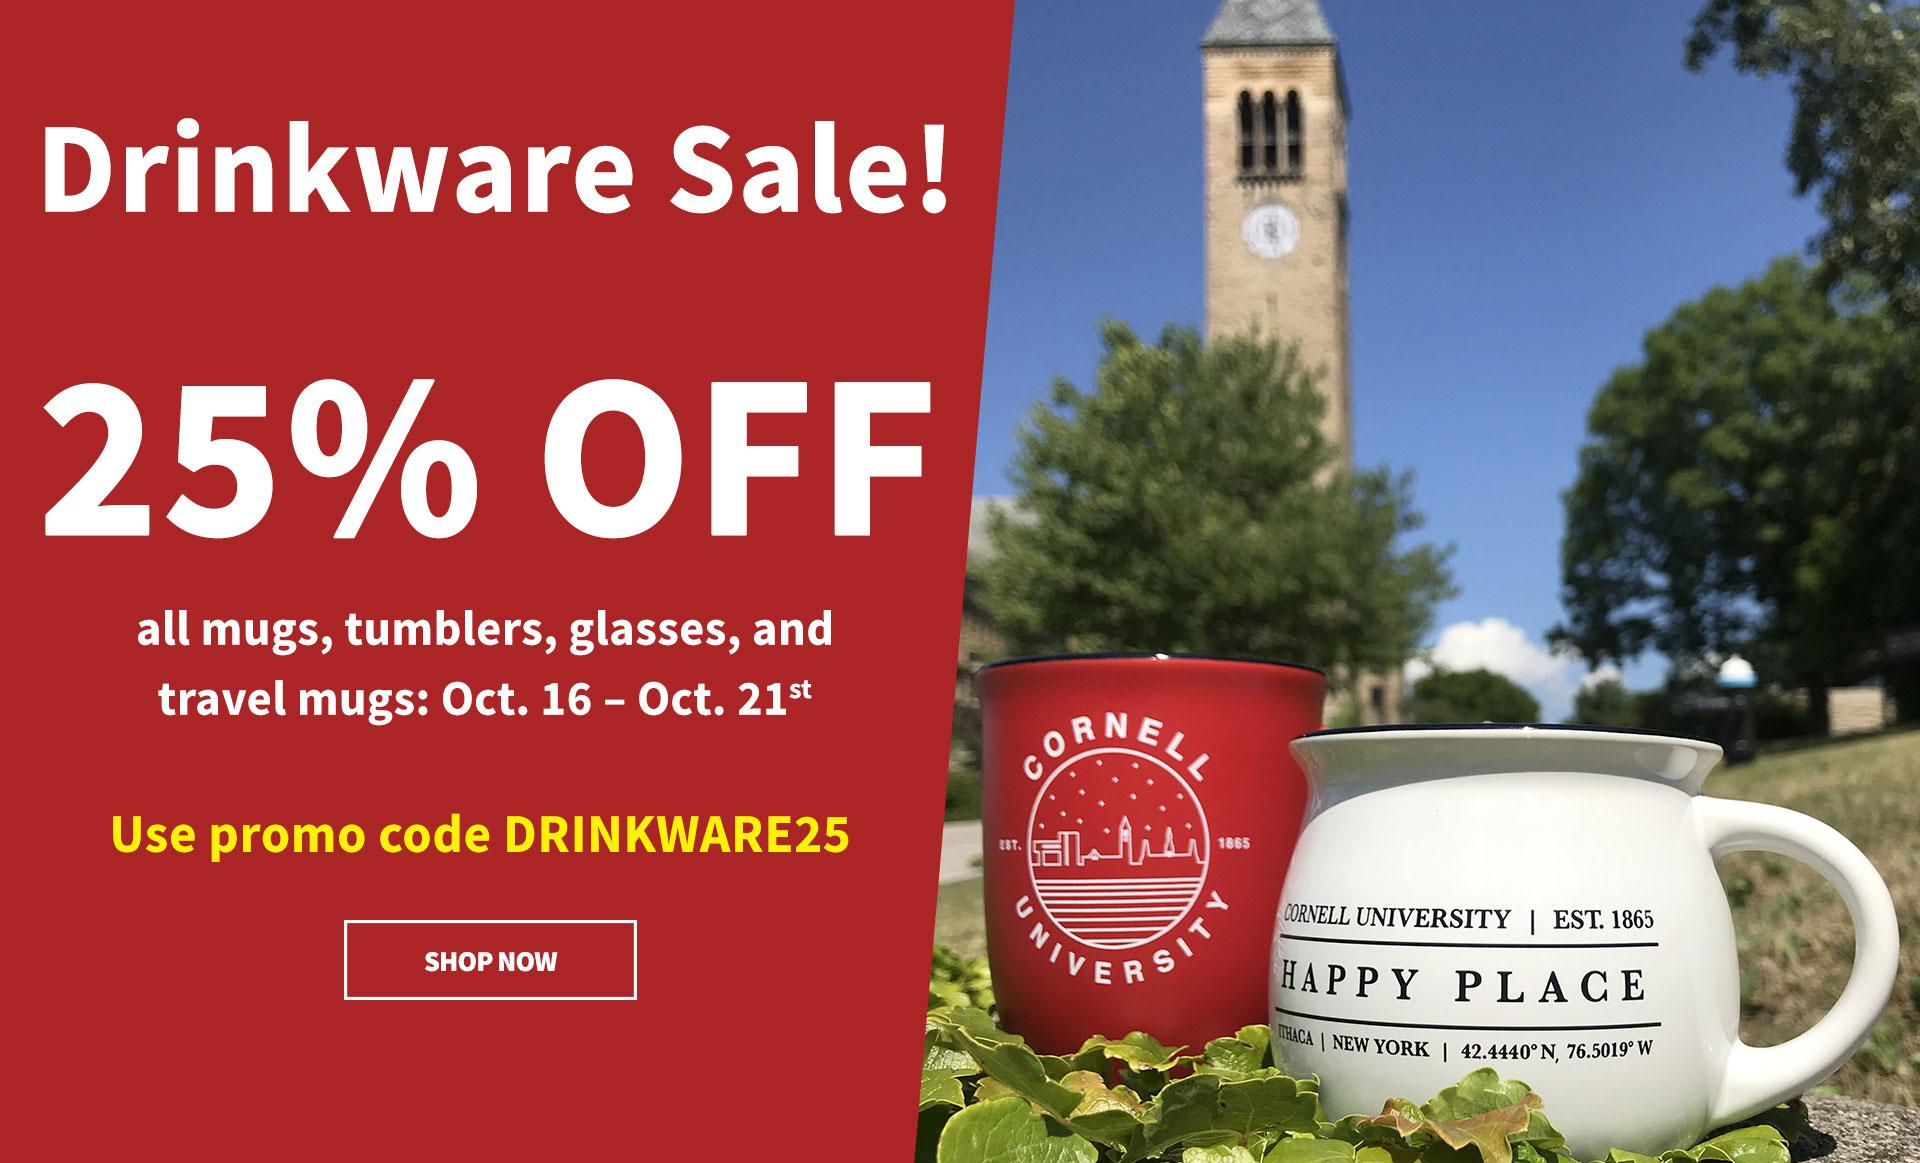 Get 25 percent off all drinkware October 16-21 with promo code DRINKWARE25